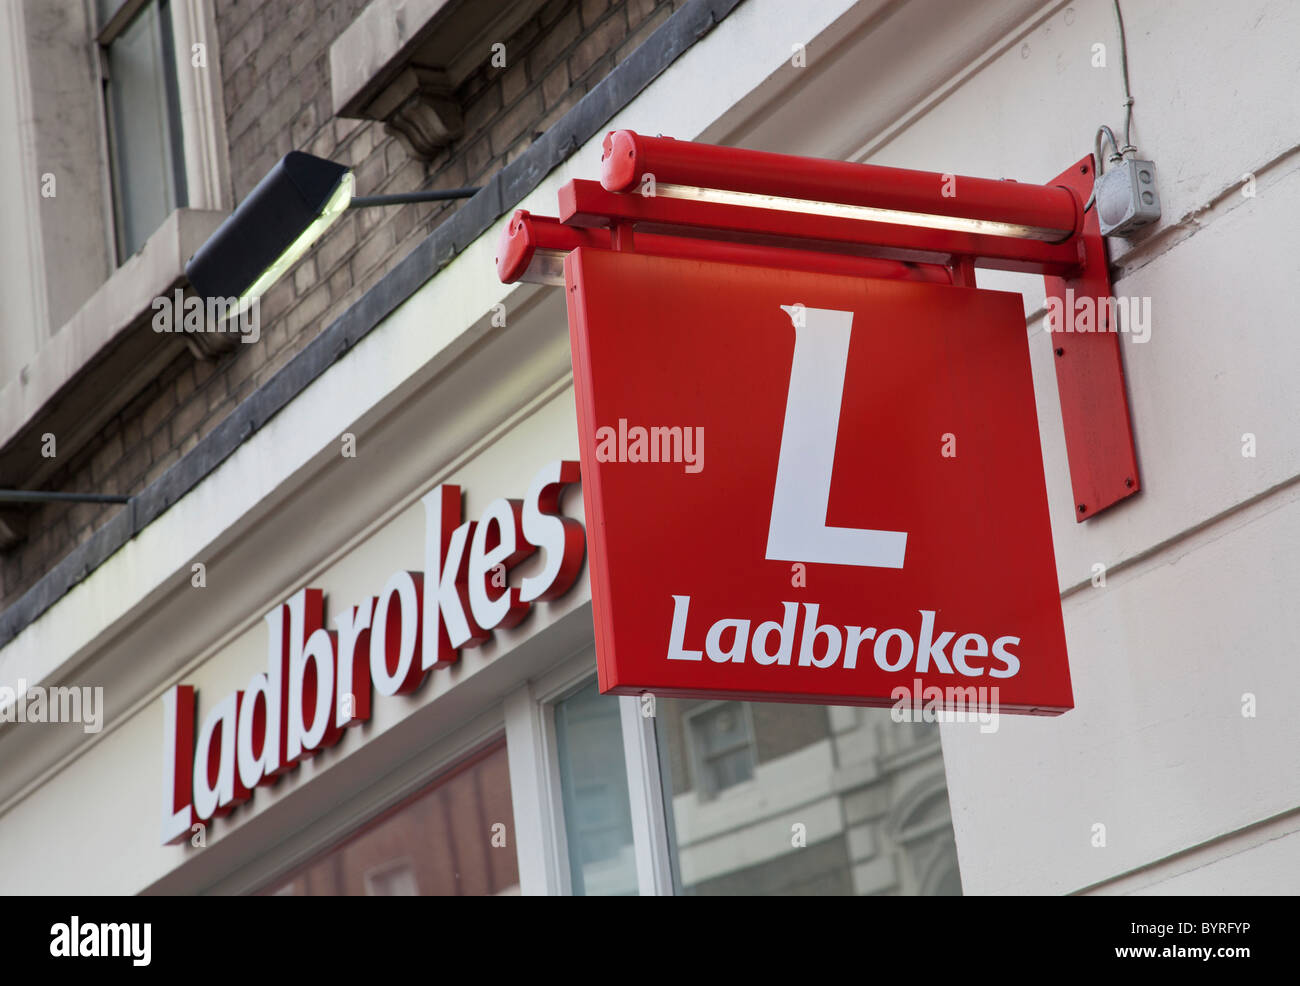 Ladbrokes betting shop, London, United Kingdom - Stock Image